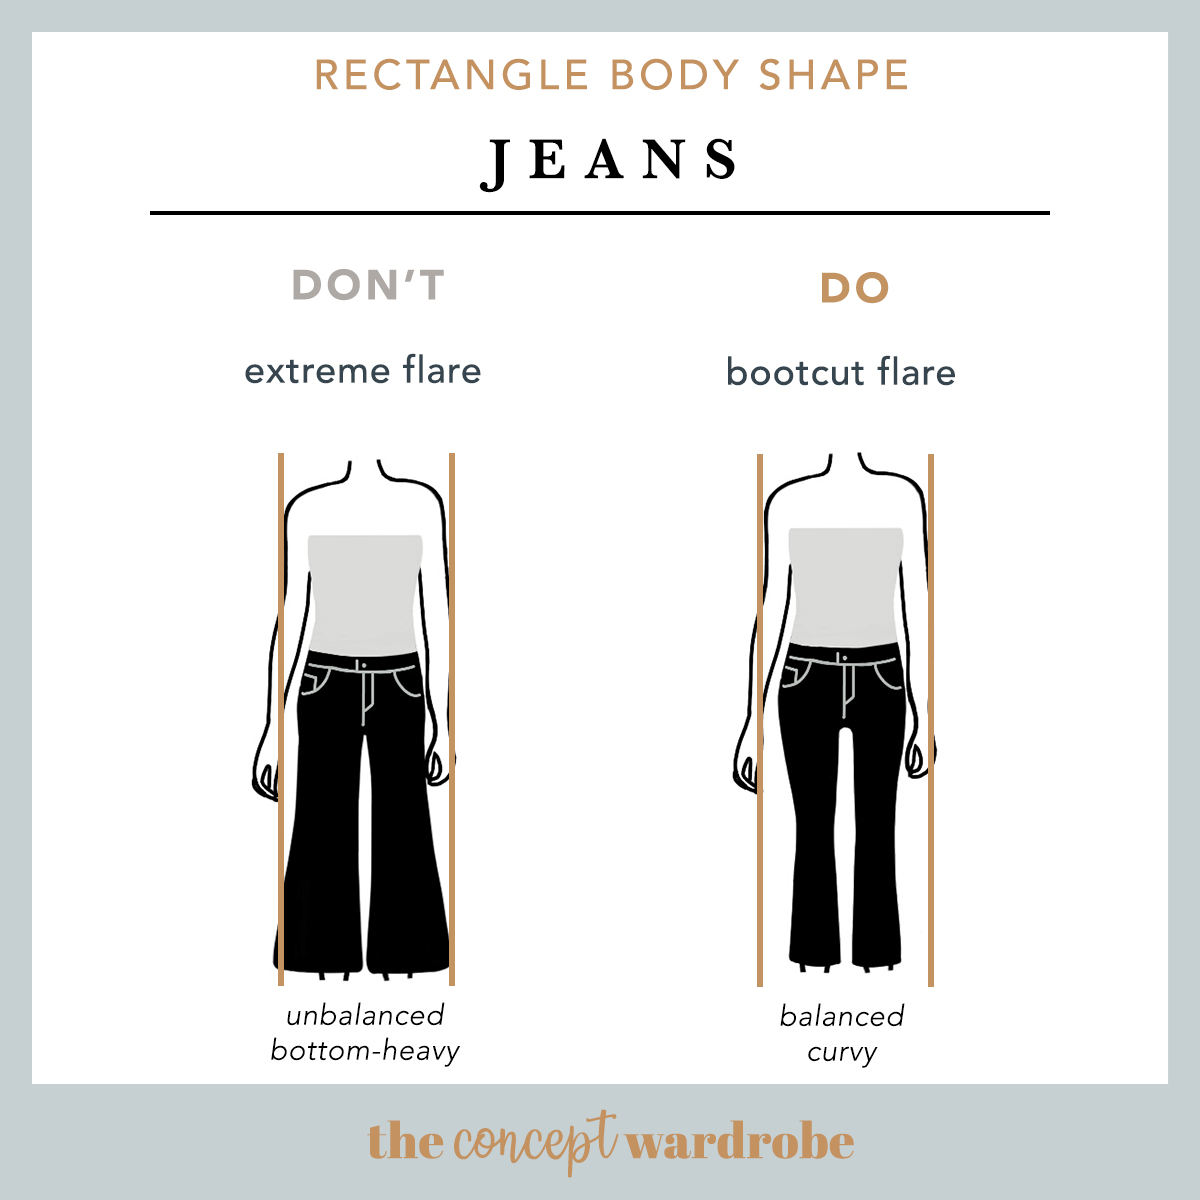 Rectangle Body Shape Jeans Do's and Don'ts - the concept wardrobe